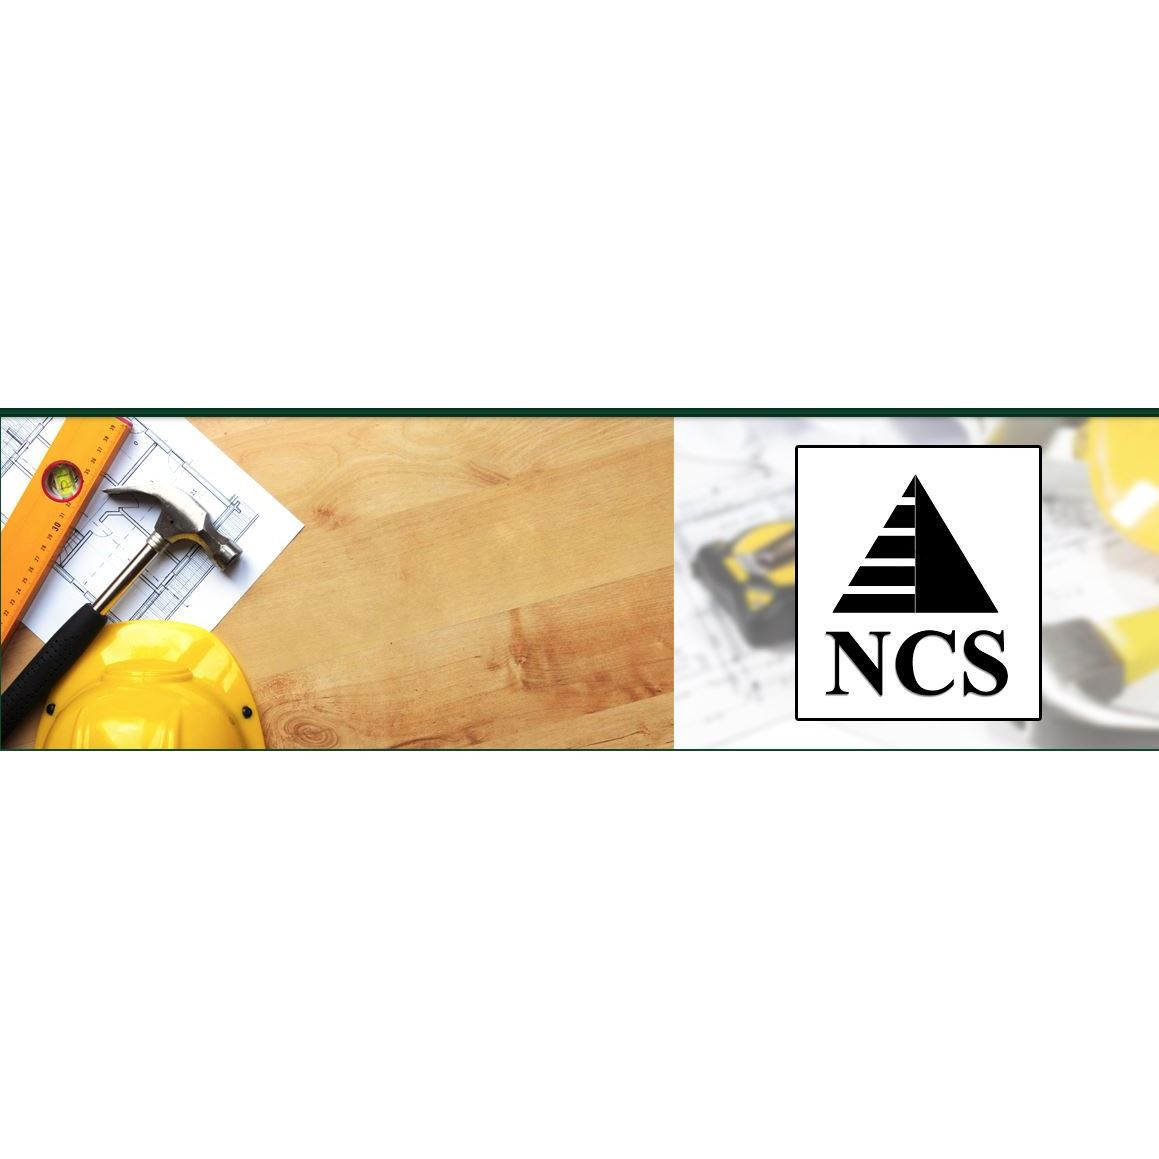 Network Contracting Services